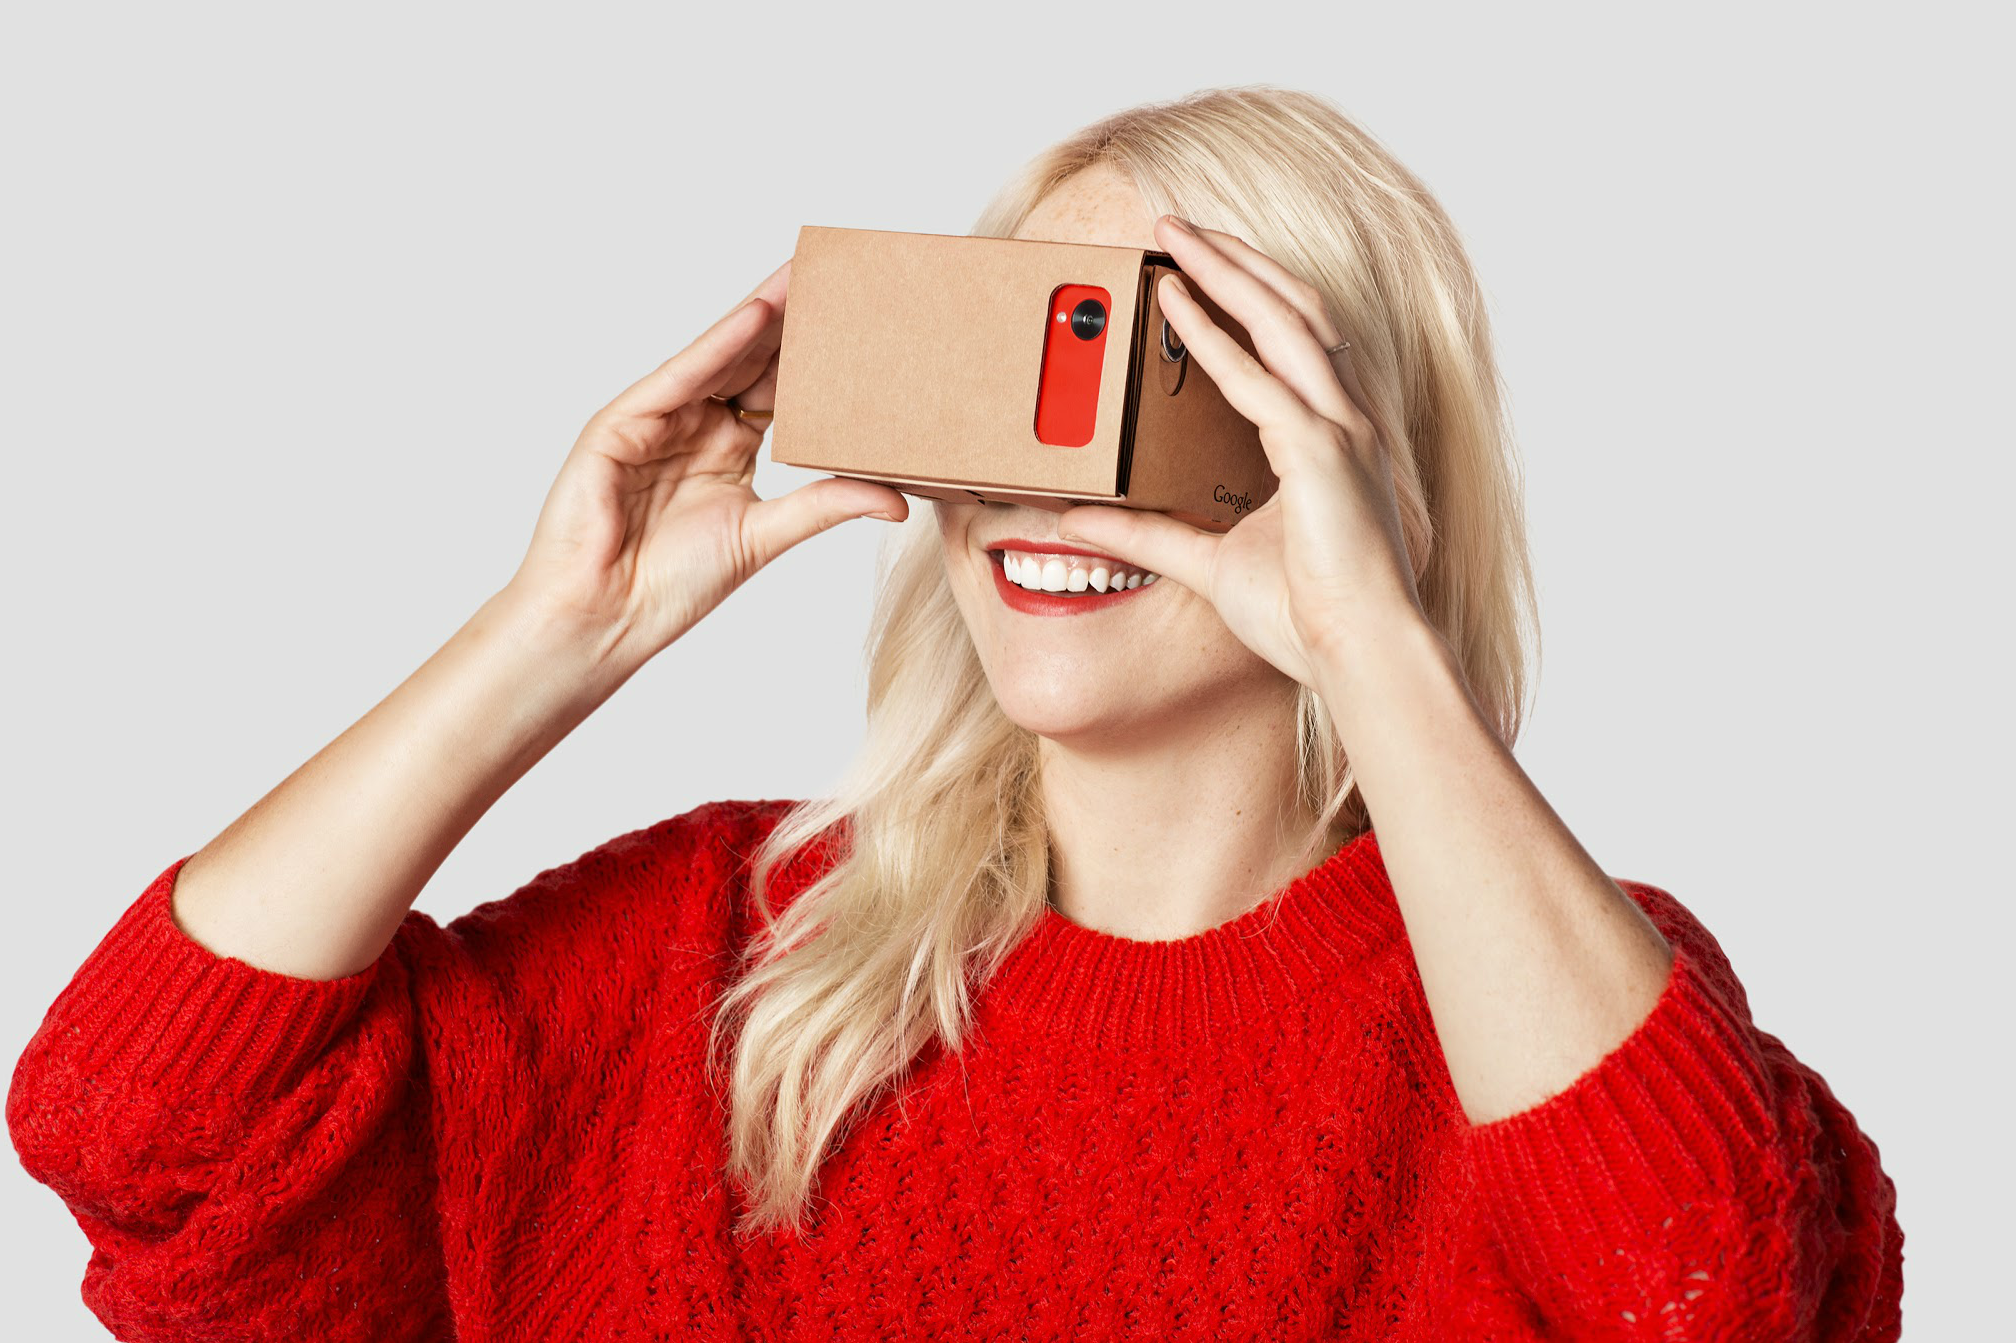 google cardboard new york times vr news